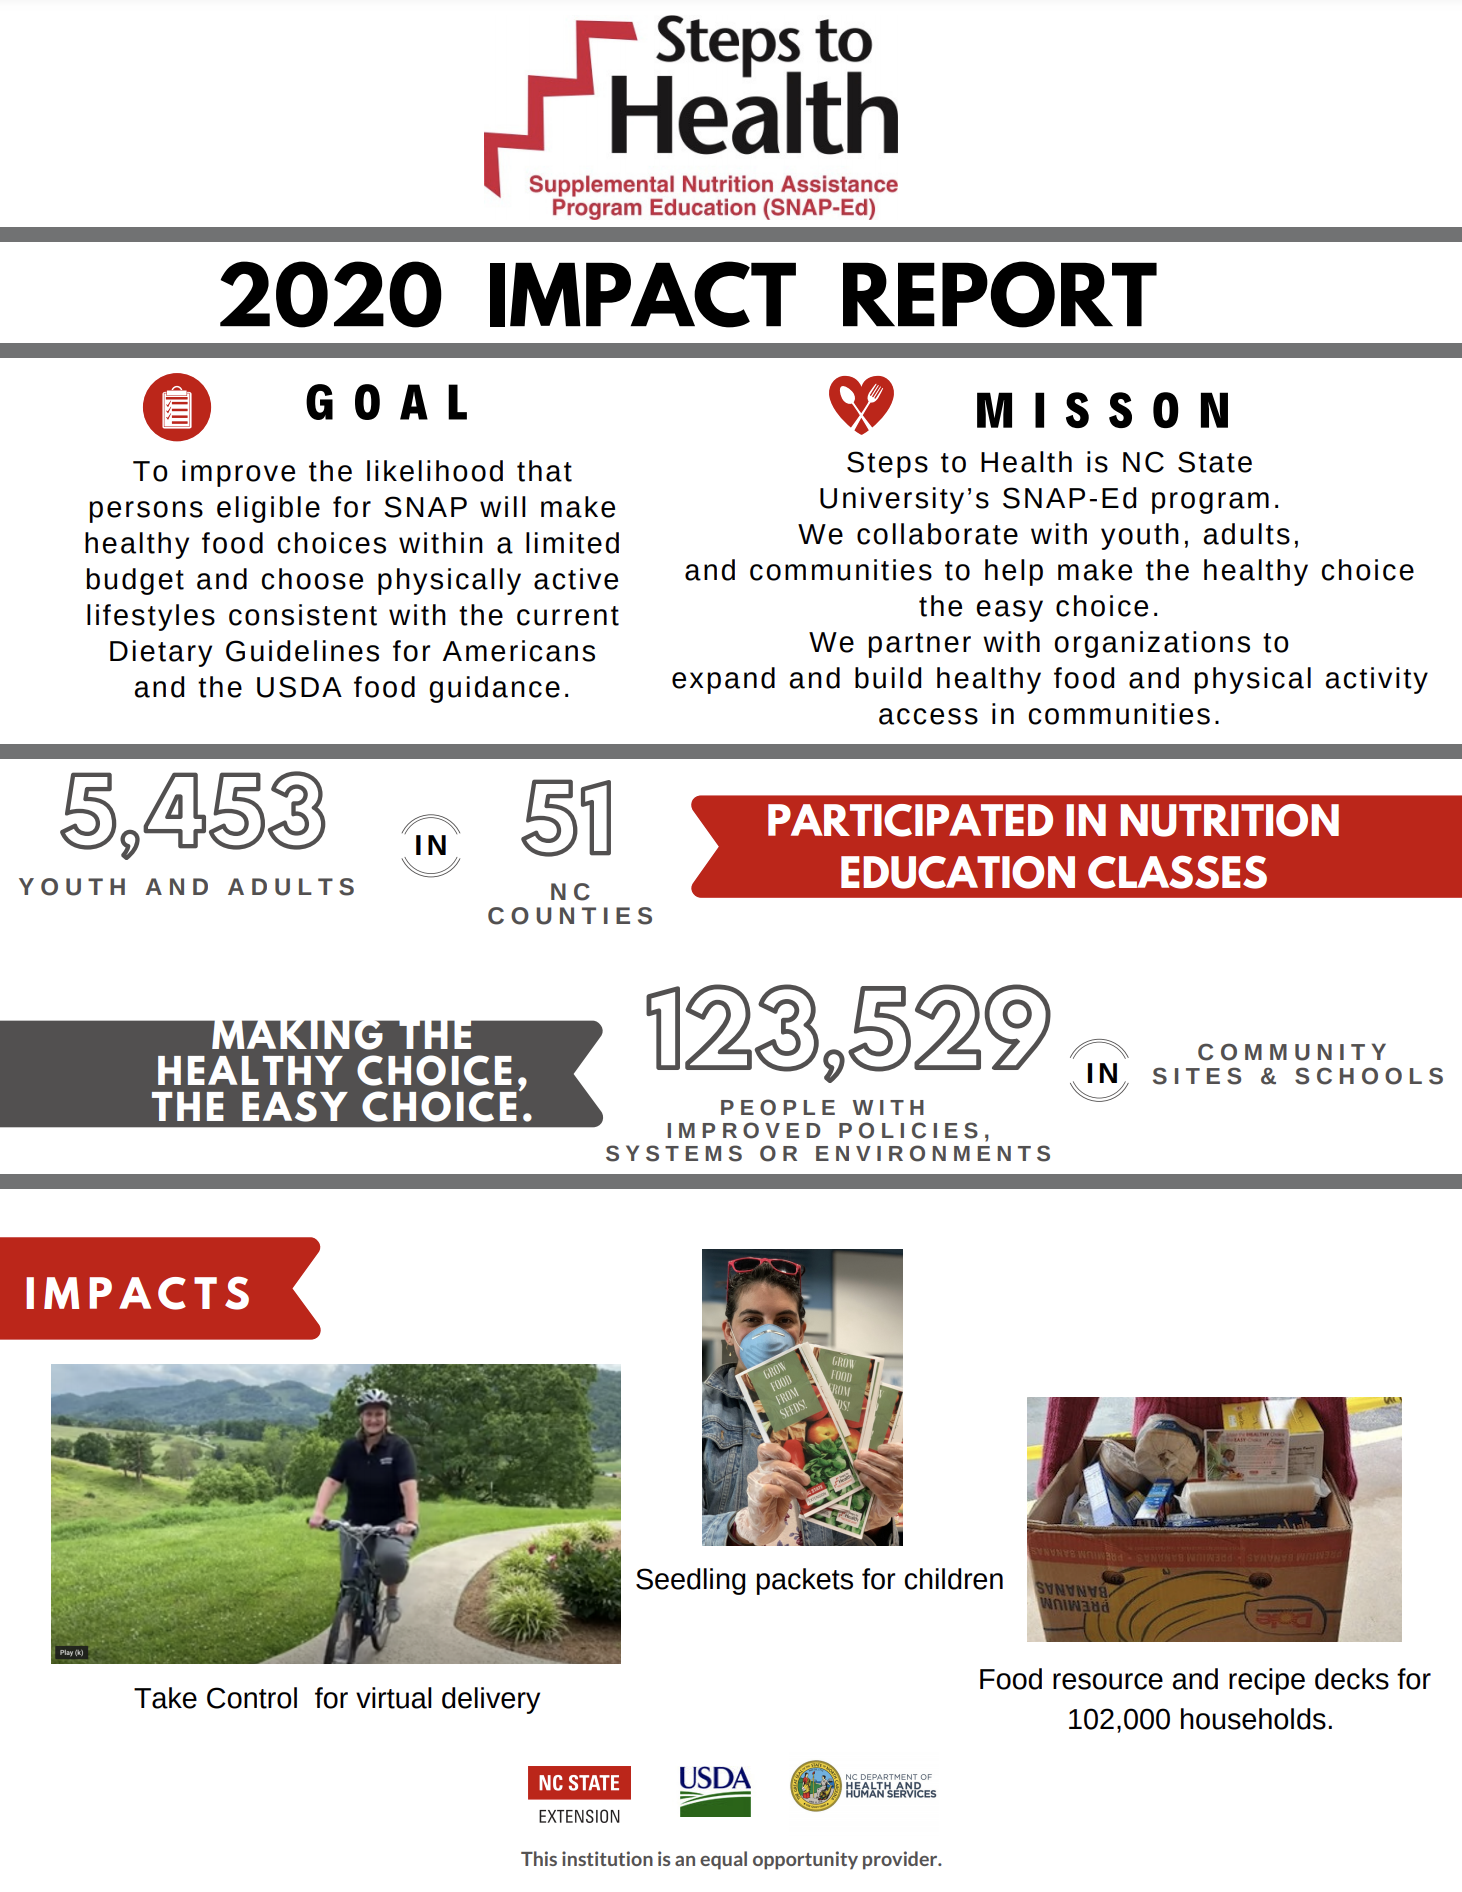 Report of Steps to HEalth Impact, infographic